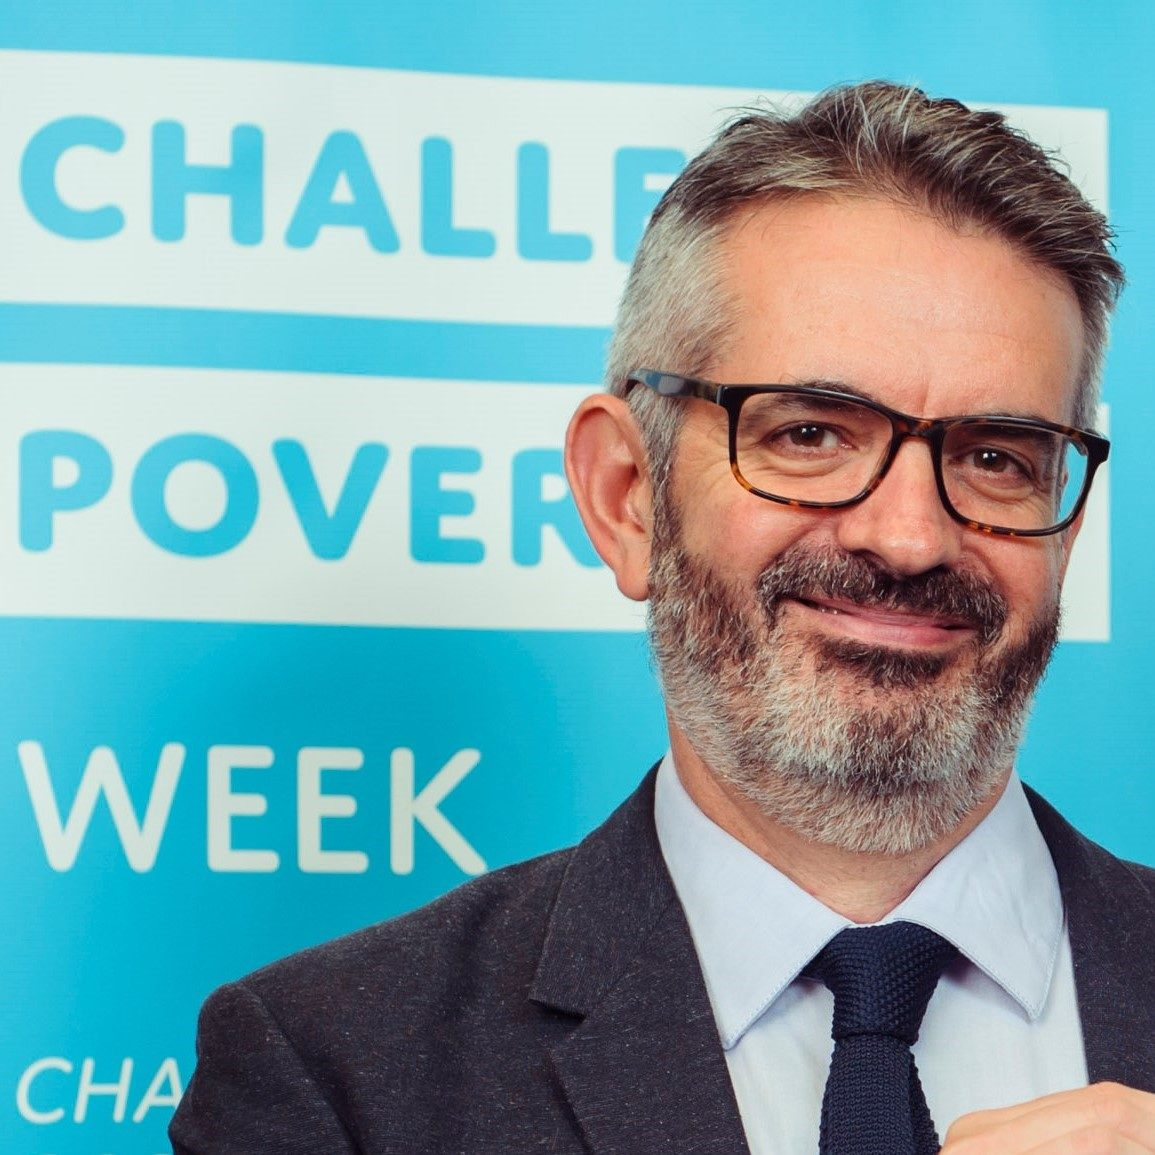 EDINBURGH, UK - 4th October 2018: Scottish MSP's show their support for Challenge Poverty Week. A debate will take place in parliament highlighting the problem of poverty in Scotland and comes as new figures published on Tuesday showed that one in four children are locked in poverty.  (Photograph: MAVERICK PHOTO AGENCY)  Full press release below.  Poverty Alliance news release For immediate use: Thursday 4th October  Photo to follow at 1.30pm  Party leaders unite to challenge poverty Today at the Scottish Parliament leaders of all the political parties represented in Holyrood will join forces to highlight the problem of poverty in Scotland and showcase the solutions we can all get behind to solve it. Leaders will unite for a photocall ahead of a debate in Parliament on the solutions to tackling poverty.[1] The debate is part of ScotlandÕs biggest ever Challenge Poverty Week.  From upcycling classes and family fun days to workshops on innovative alternatives to food banks, more than 100 events are happening this week. Academics, leading NGOs, churches, community groups, schools and leaders of all the major political parties are among those to show their support for the campaign.  NHS Health Scotland, Shelter, NSPCC Scotland, Close the Gap, Refugee Survival Trust, The Church of Scotland and Citizens Advice Scotland are among those joining forces to highlight the grip poverty has on peopleÕs lives and the policies we need to solve the problem.   It comes as new figures published on Tuesday showed that one in four children are locked in poverty and that the majority of these children are in families where someone is disabled or parents are finding it difficult to juggle work and childcare. [2] Peter Kelly, Director of the Poverty Alliance said:  ÒIn our society we believe in doing the right thing. And yet, weÕre letting increasing numbers of people get swept up in the rising tide of poverty.  ÒAll across Scotland people from all walks of life are coming together to